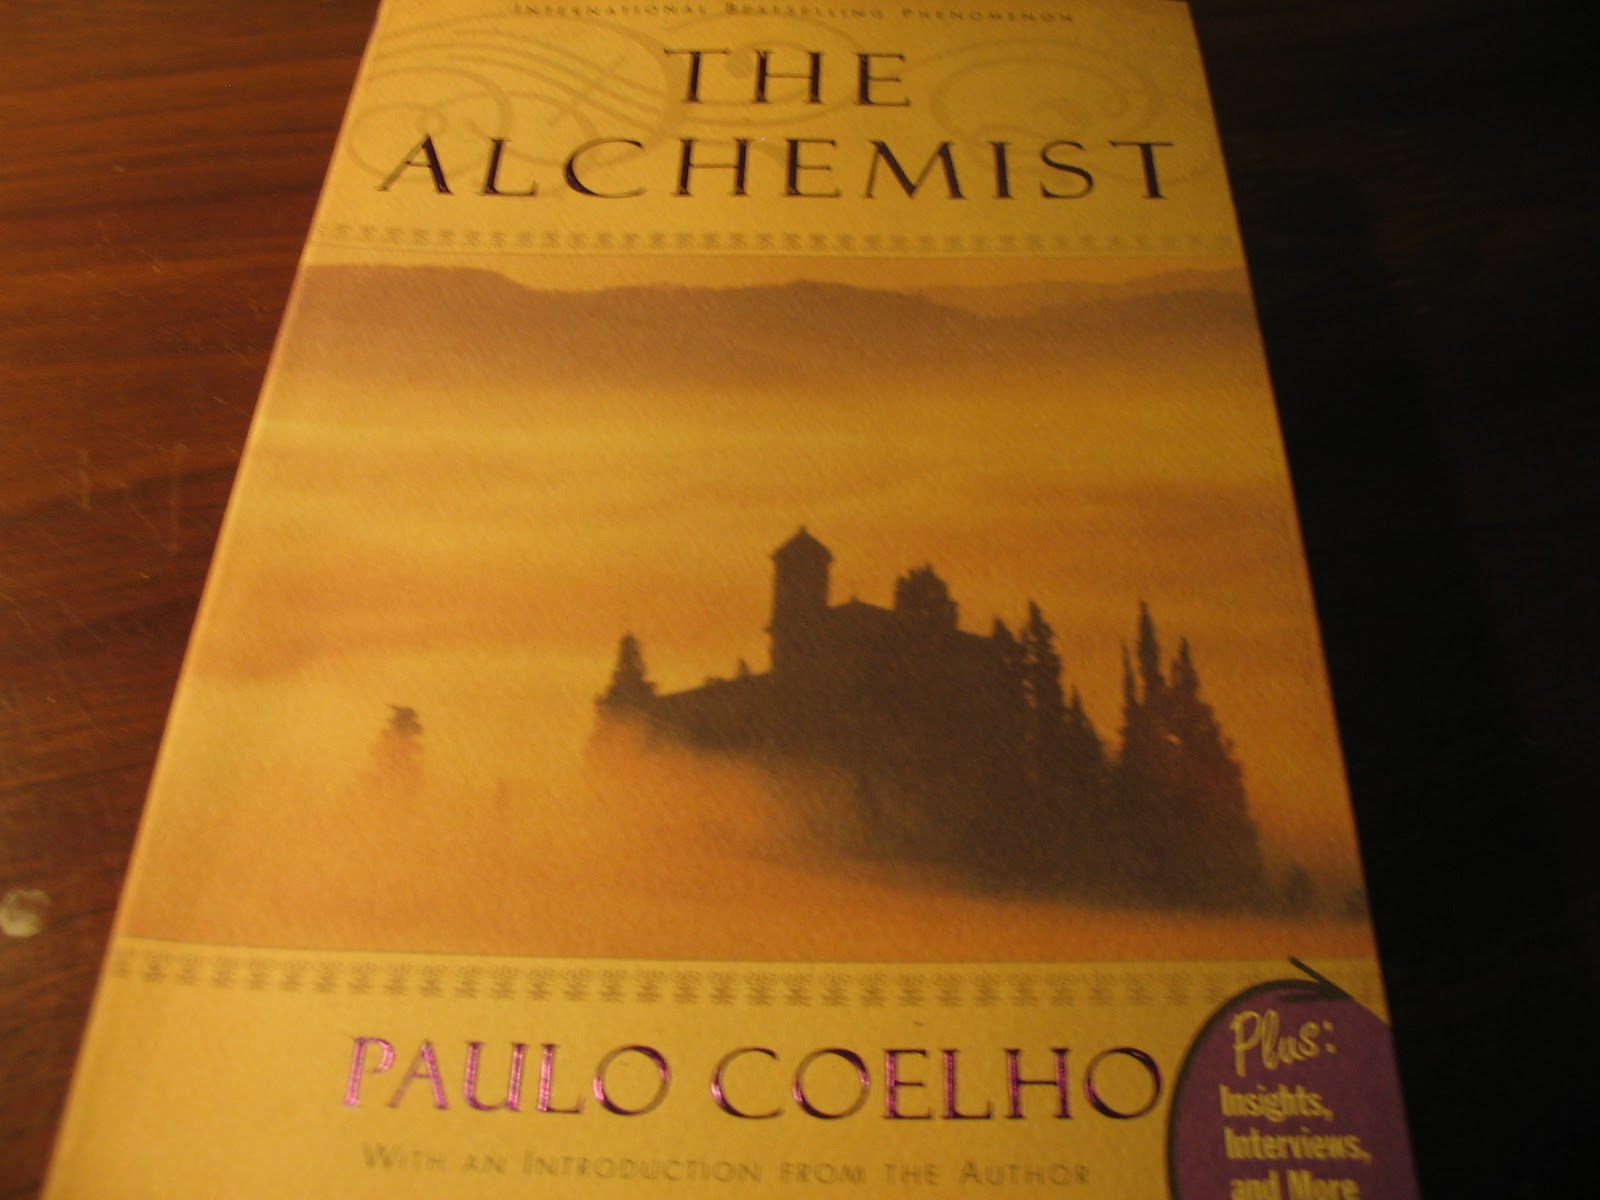 paulo coelhos the alchemist essay The alchemist is the novel written by brazilian author paulo coelho the main character of the book is the alchemist, a shepherd named santiago who pursues his dreams to find a treasure and reaches it in the end.